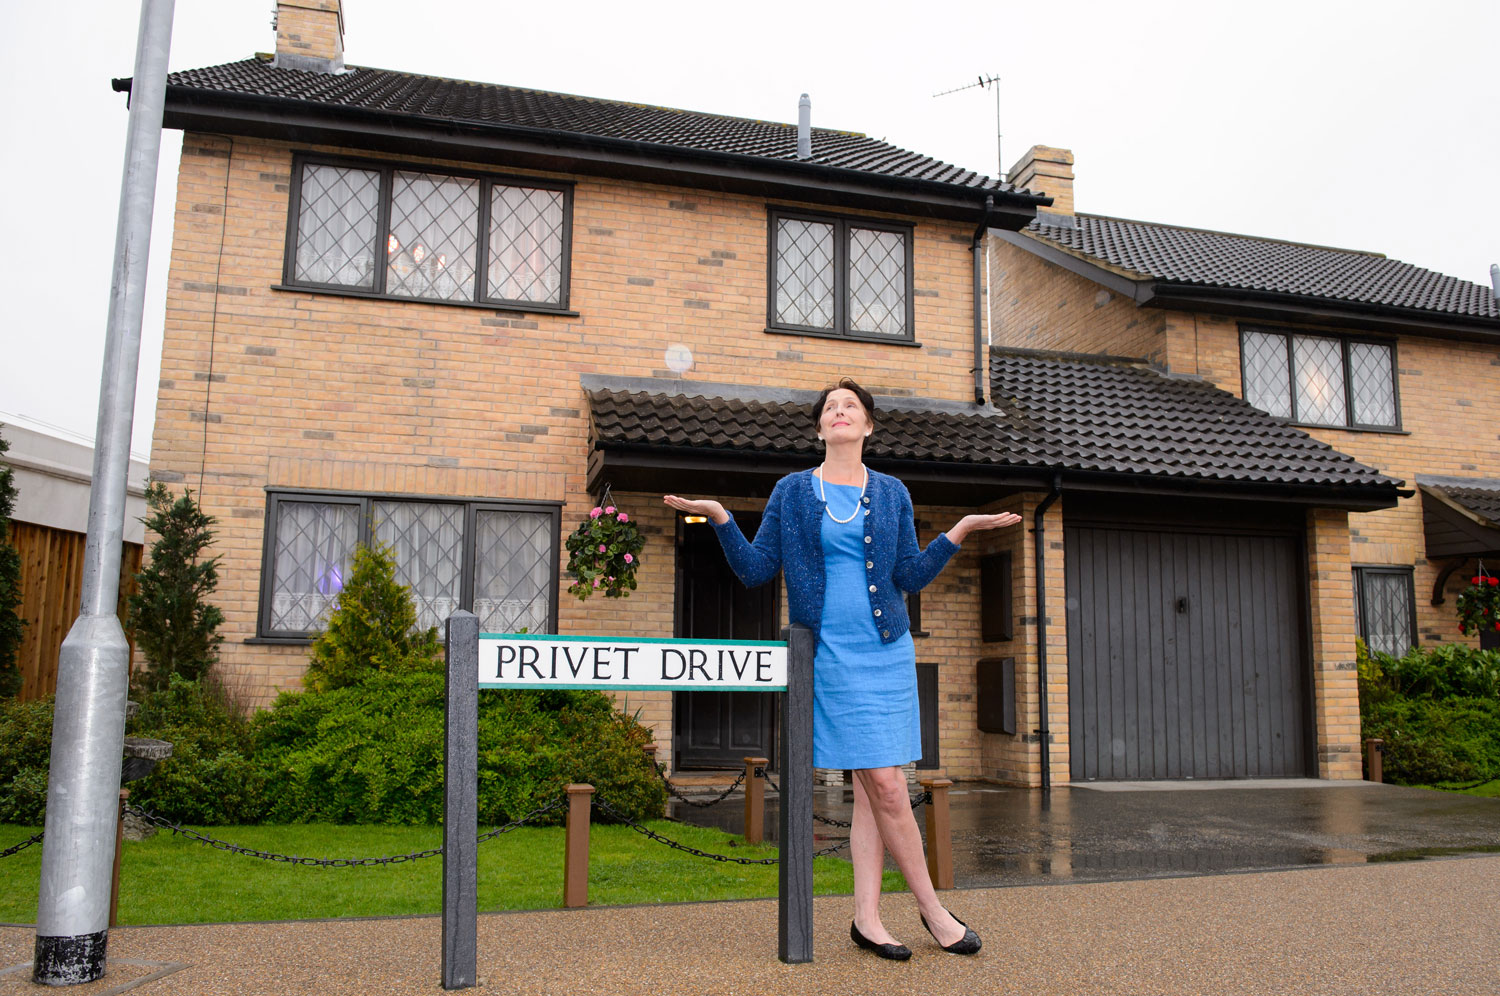 You can now visit Harry Potter's Privet Drive IRL